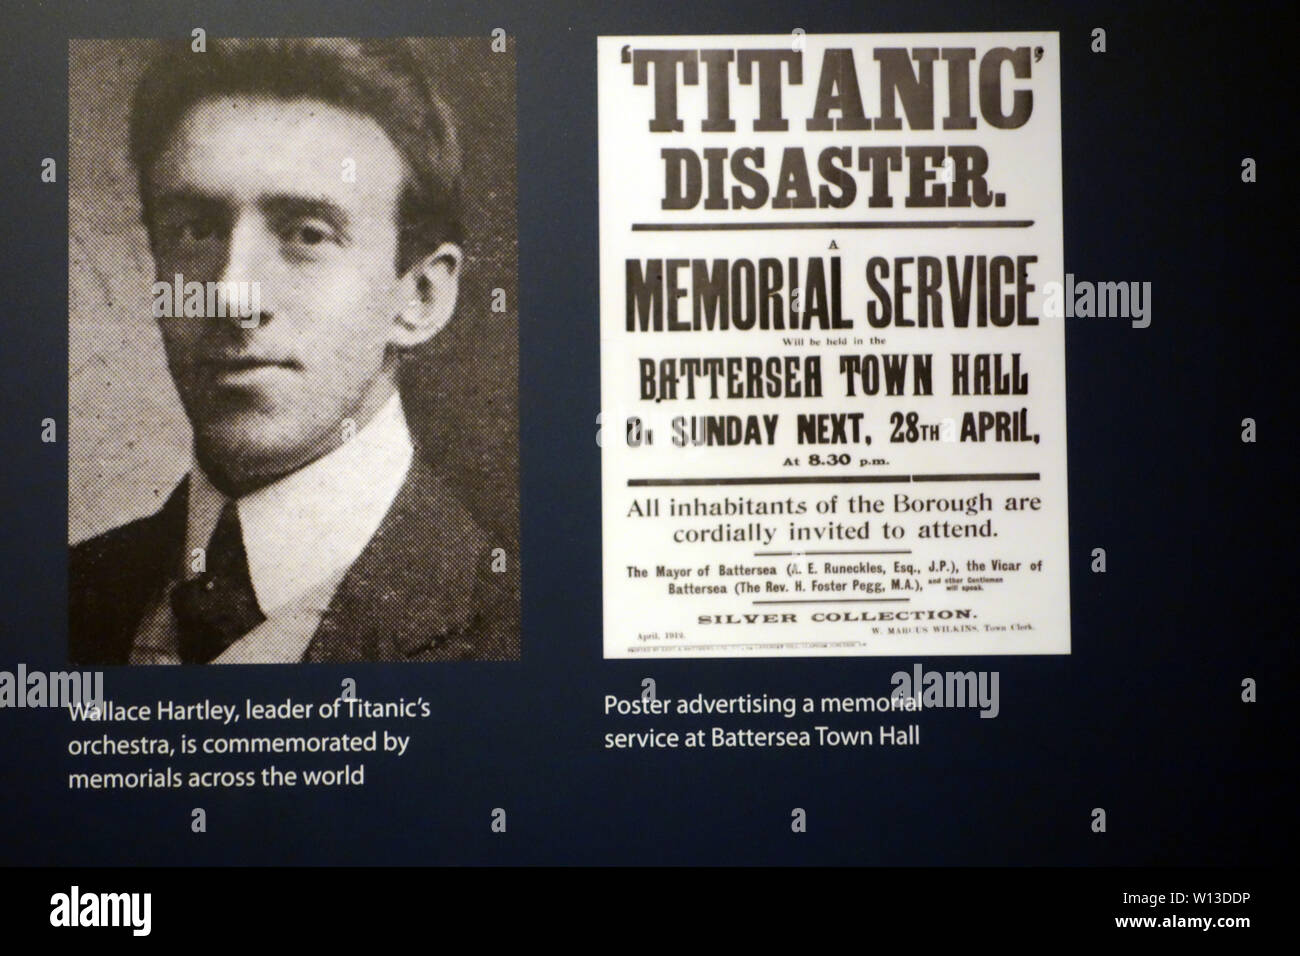 Photograph & Poster of Wallace Hartley at the Titanic Experience Museum in the Titanic Quarter, Belfast, County Antrim, Northern Ireland, UK. - Stock Image